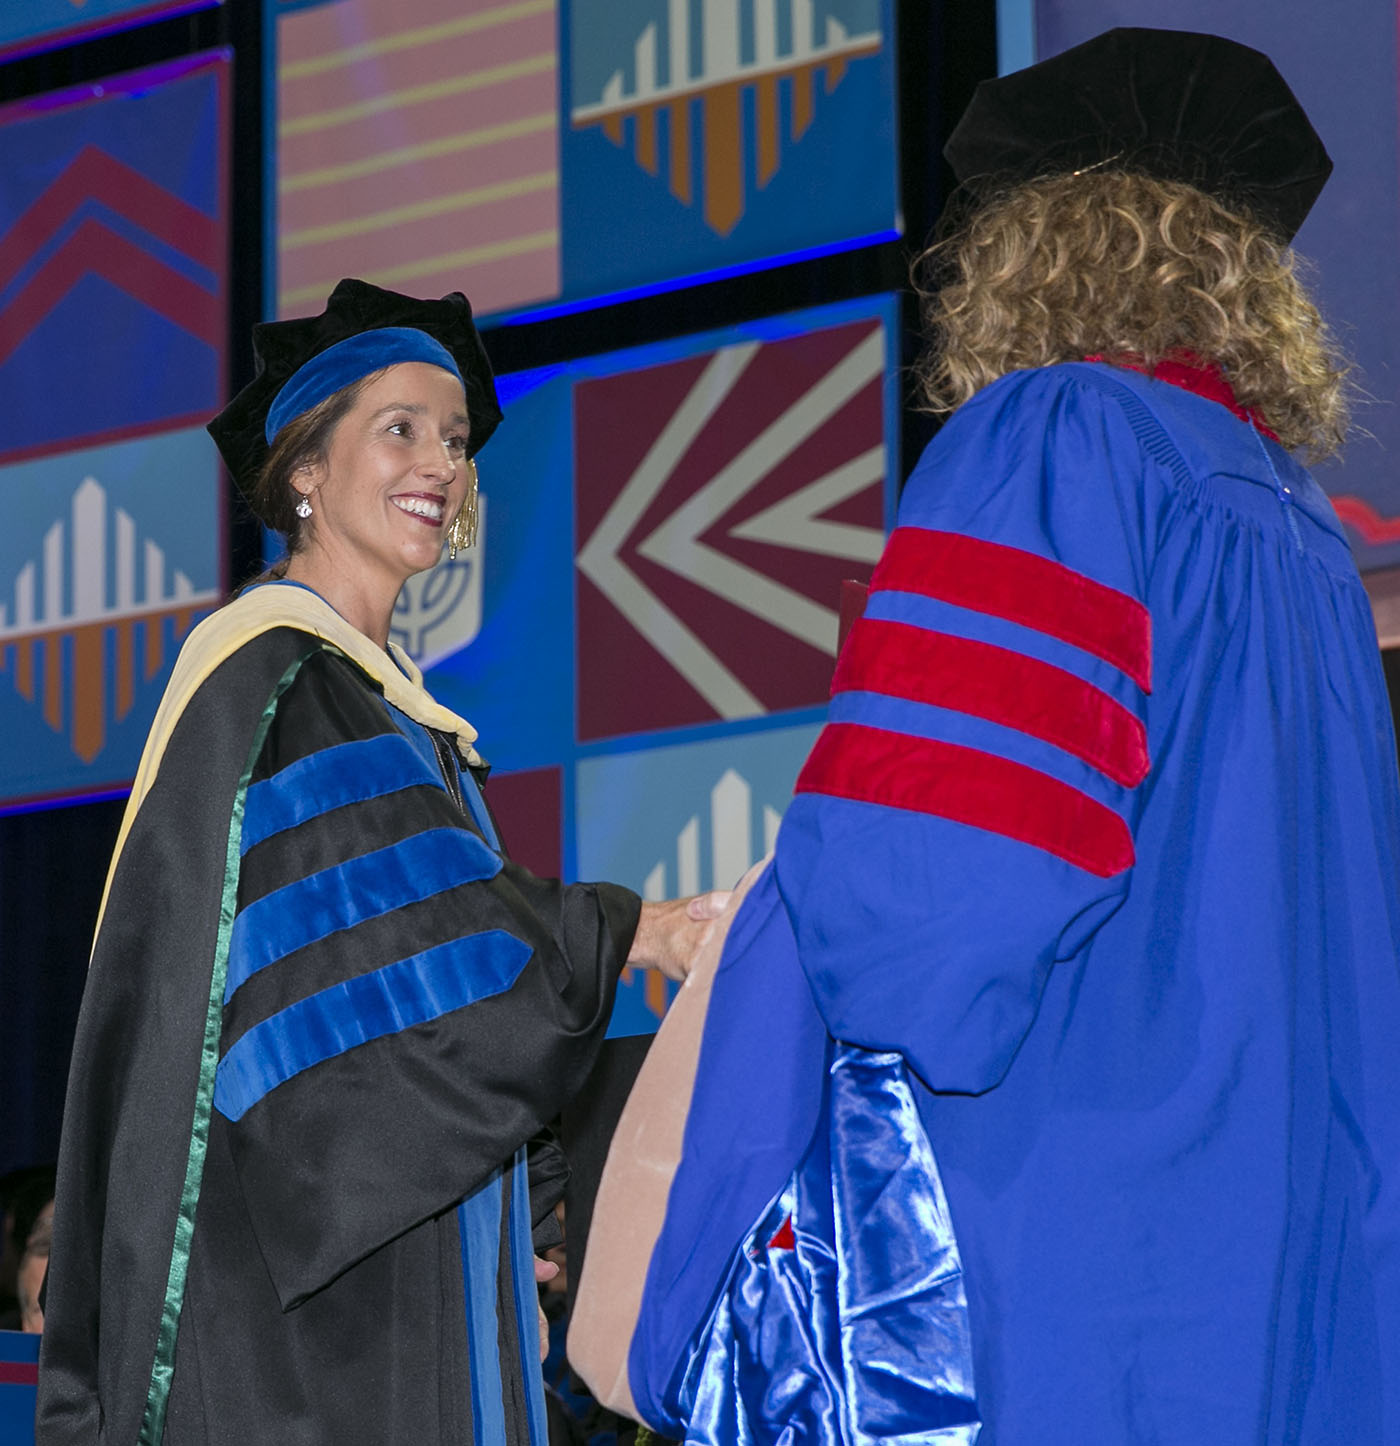 Misty M. Johanson, dean of the Driehaus College of Business, congratulates the graduates as they receive their doctoral degrees at the DePaul University commencement ceremony